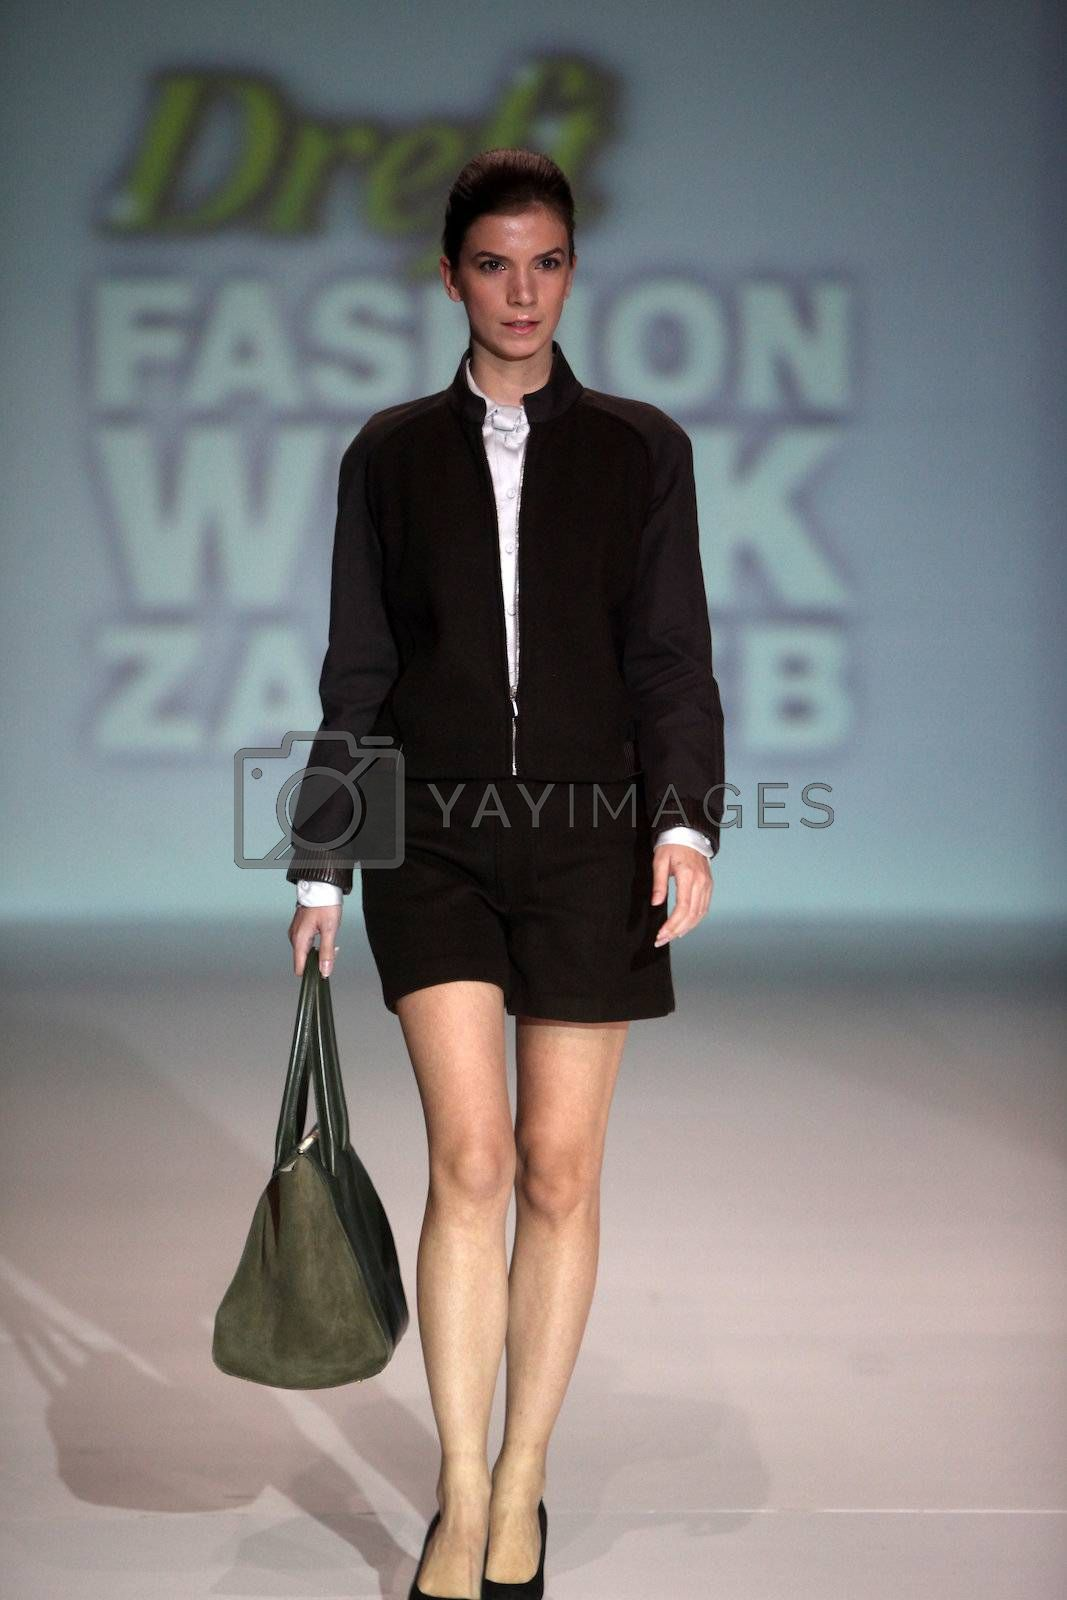 """ZAGREB, CROATIA - May 10: Fashion model wears clothes made by Negarin on """"ZAGREB FASHION WEEK"""" show on May 10, 2013 in Zagreb, Croatia"""